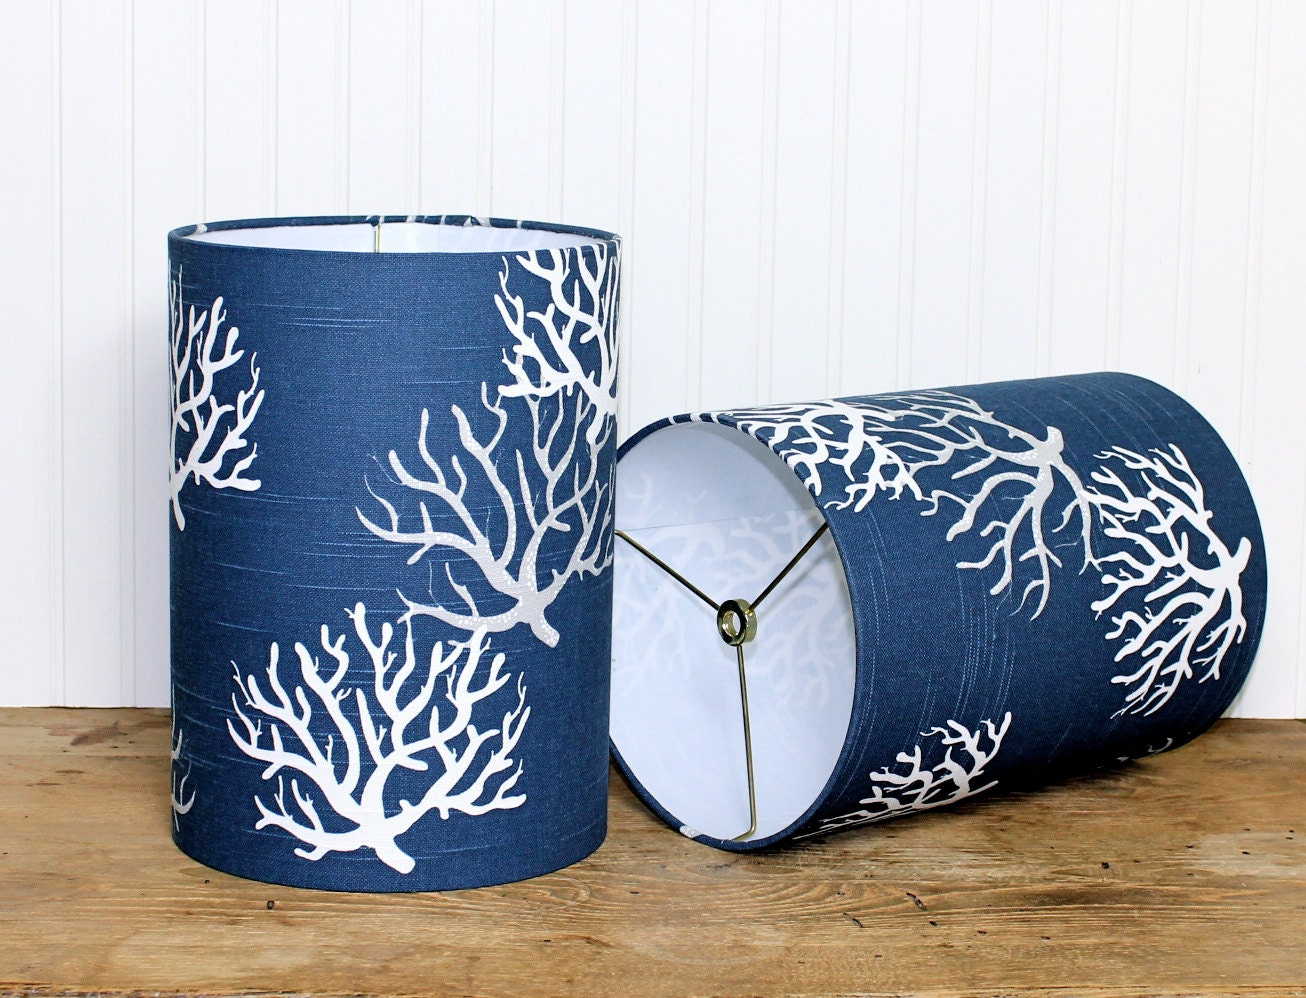 sale navy drum shade lamp shade navy coral lamp shade. Black Bedroom Furniture Sets. Home Design Ideas